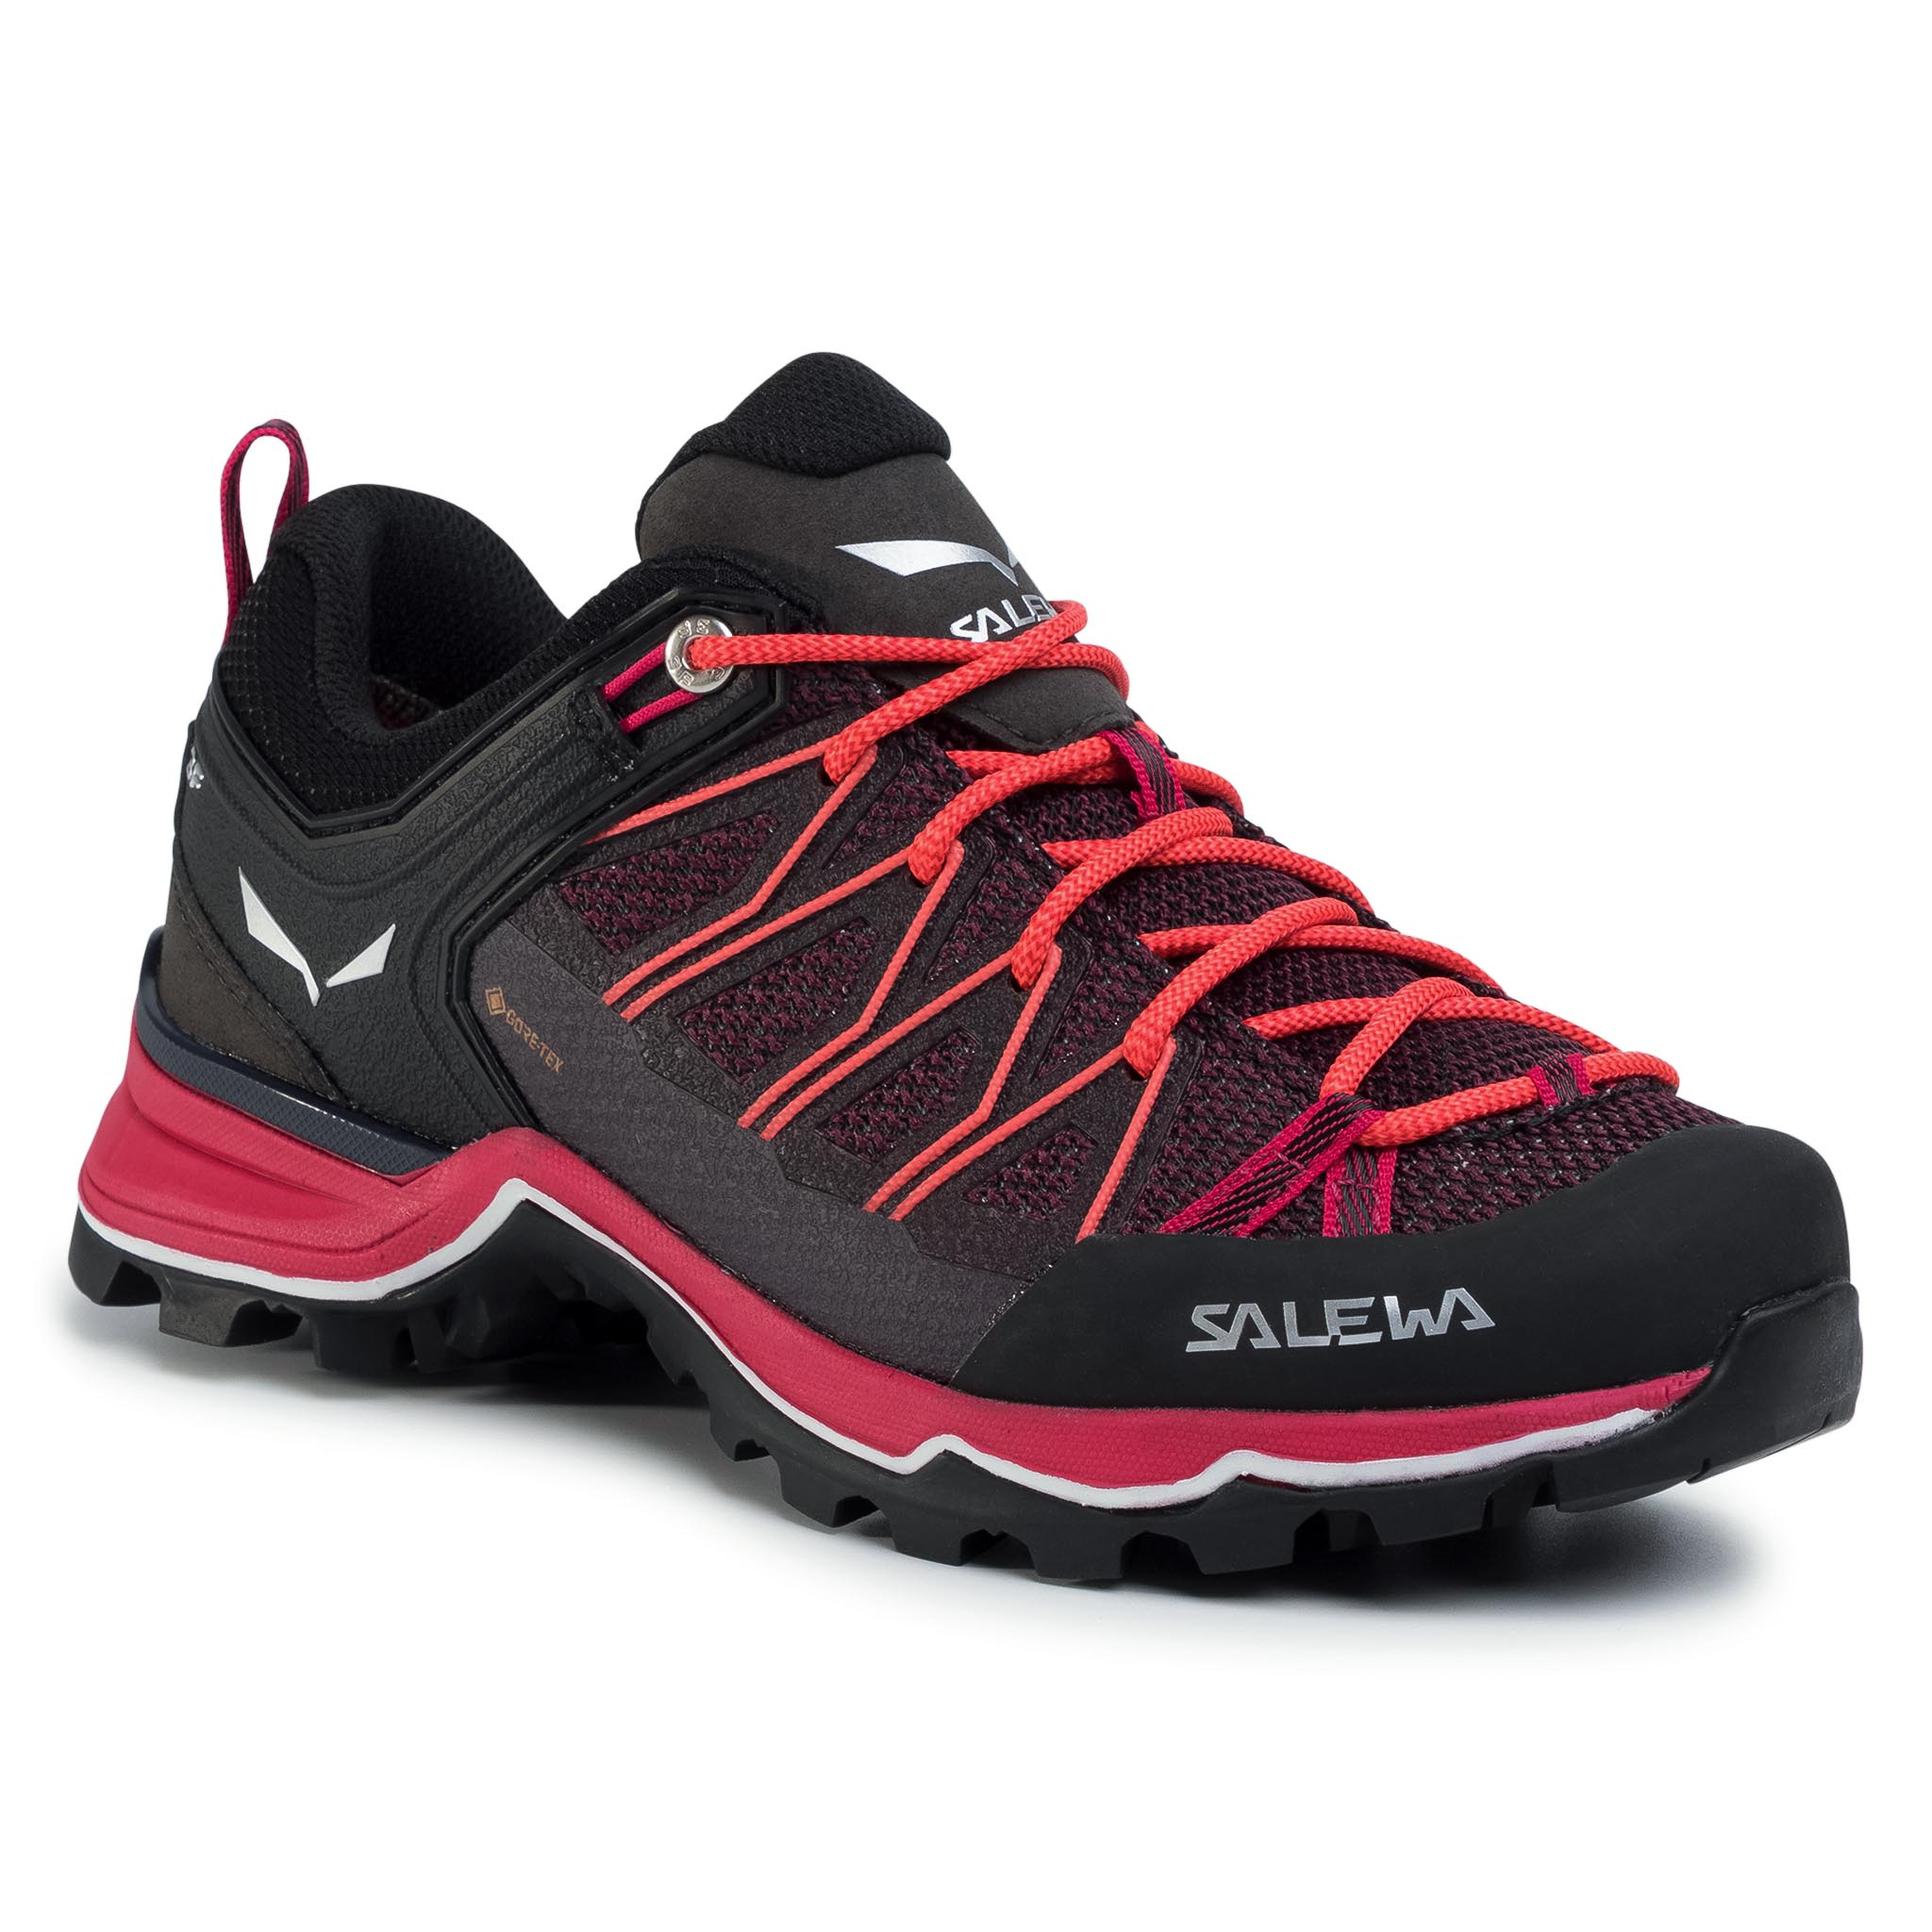 Trekkings Salewa - Ws Mnt Trainer Lite Gtx Gore-Tex 61362 Virtual Pink/Mystical 6155 imagine epantofi.ro 2021